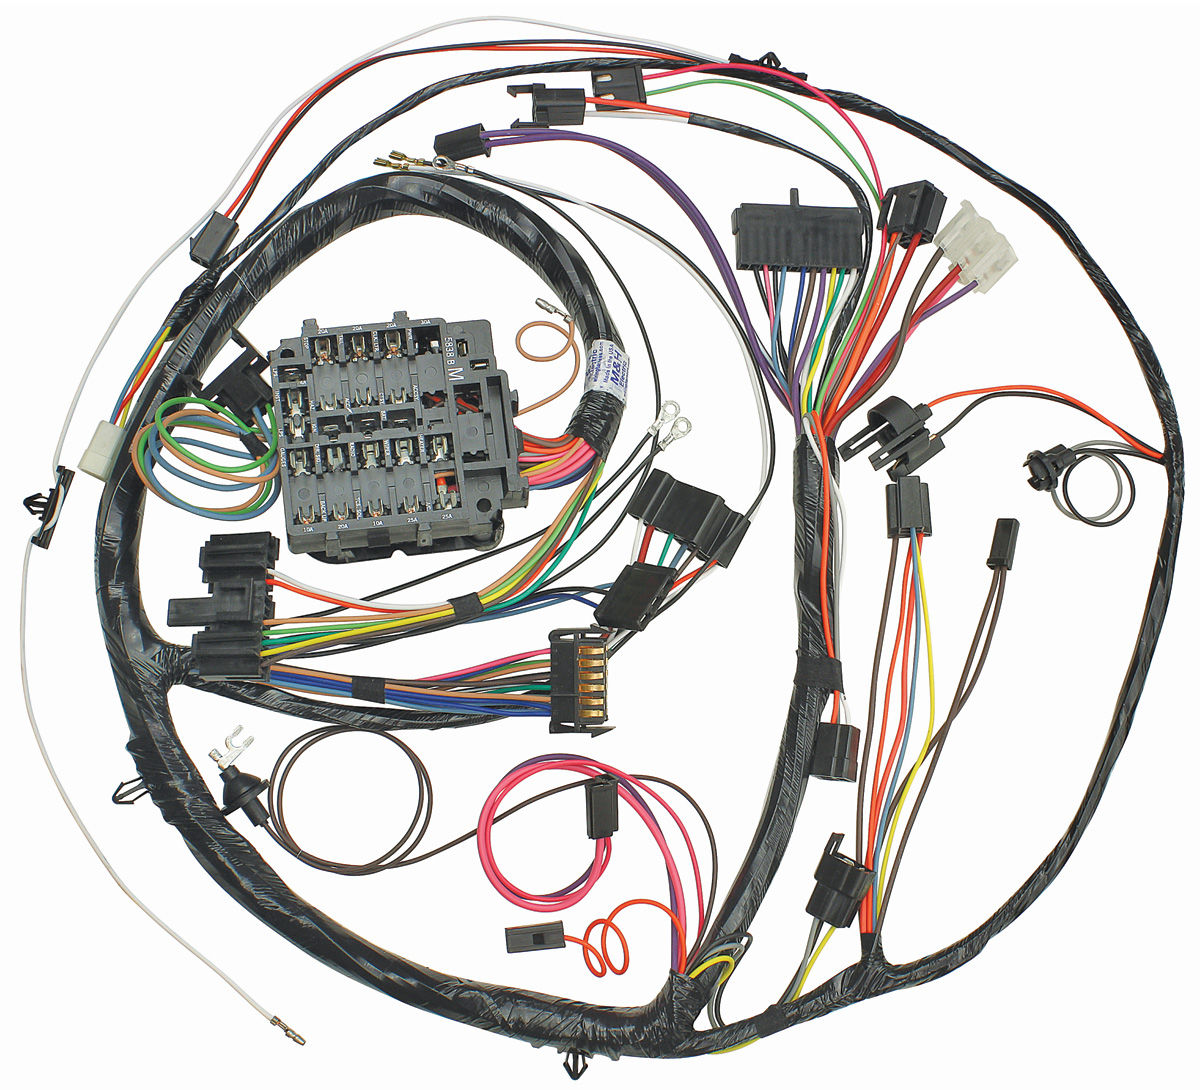 hight resolution of 1970 chevelle ss dash wiring harness 1970 get free image 1971 chevelle wiring diagram 1970 chevelle radio wiring diagram